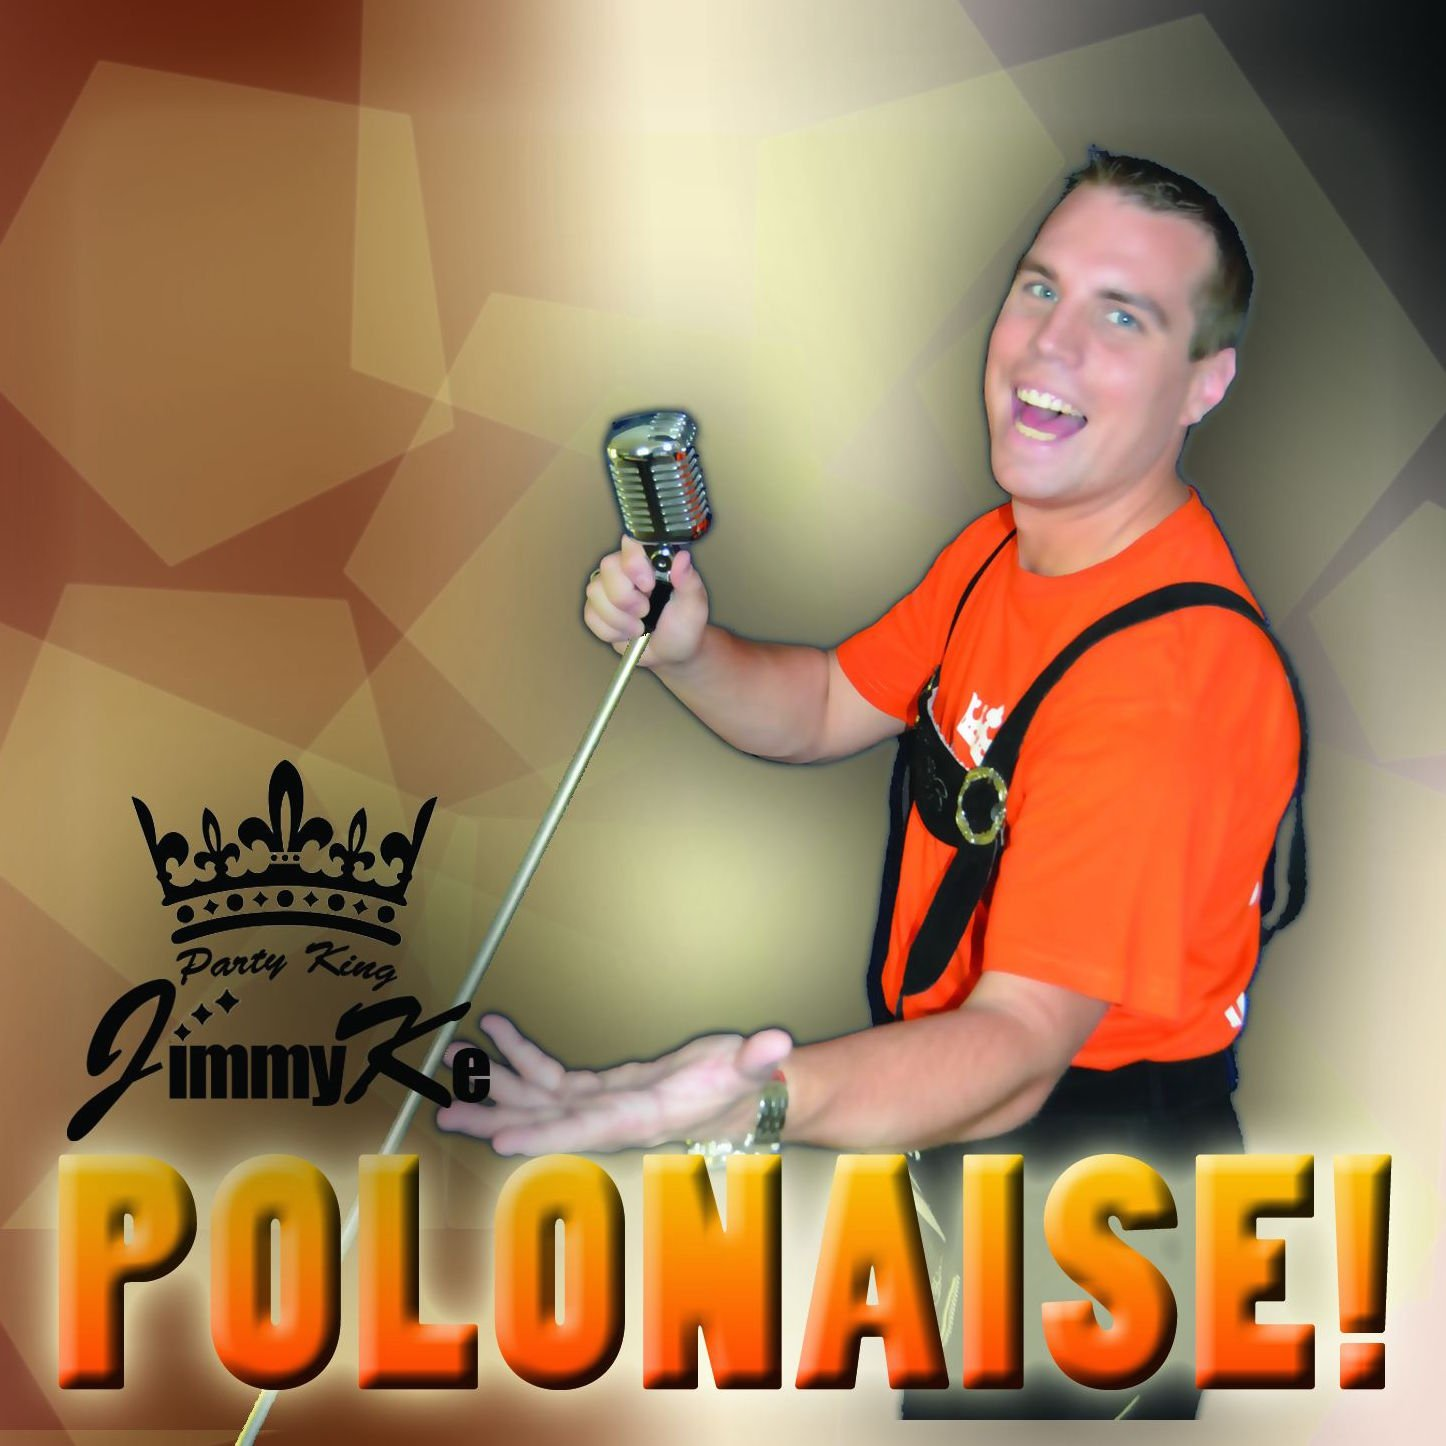 Polonaise! FRONT